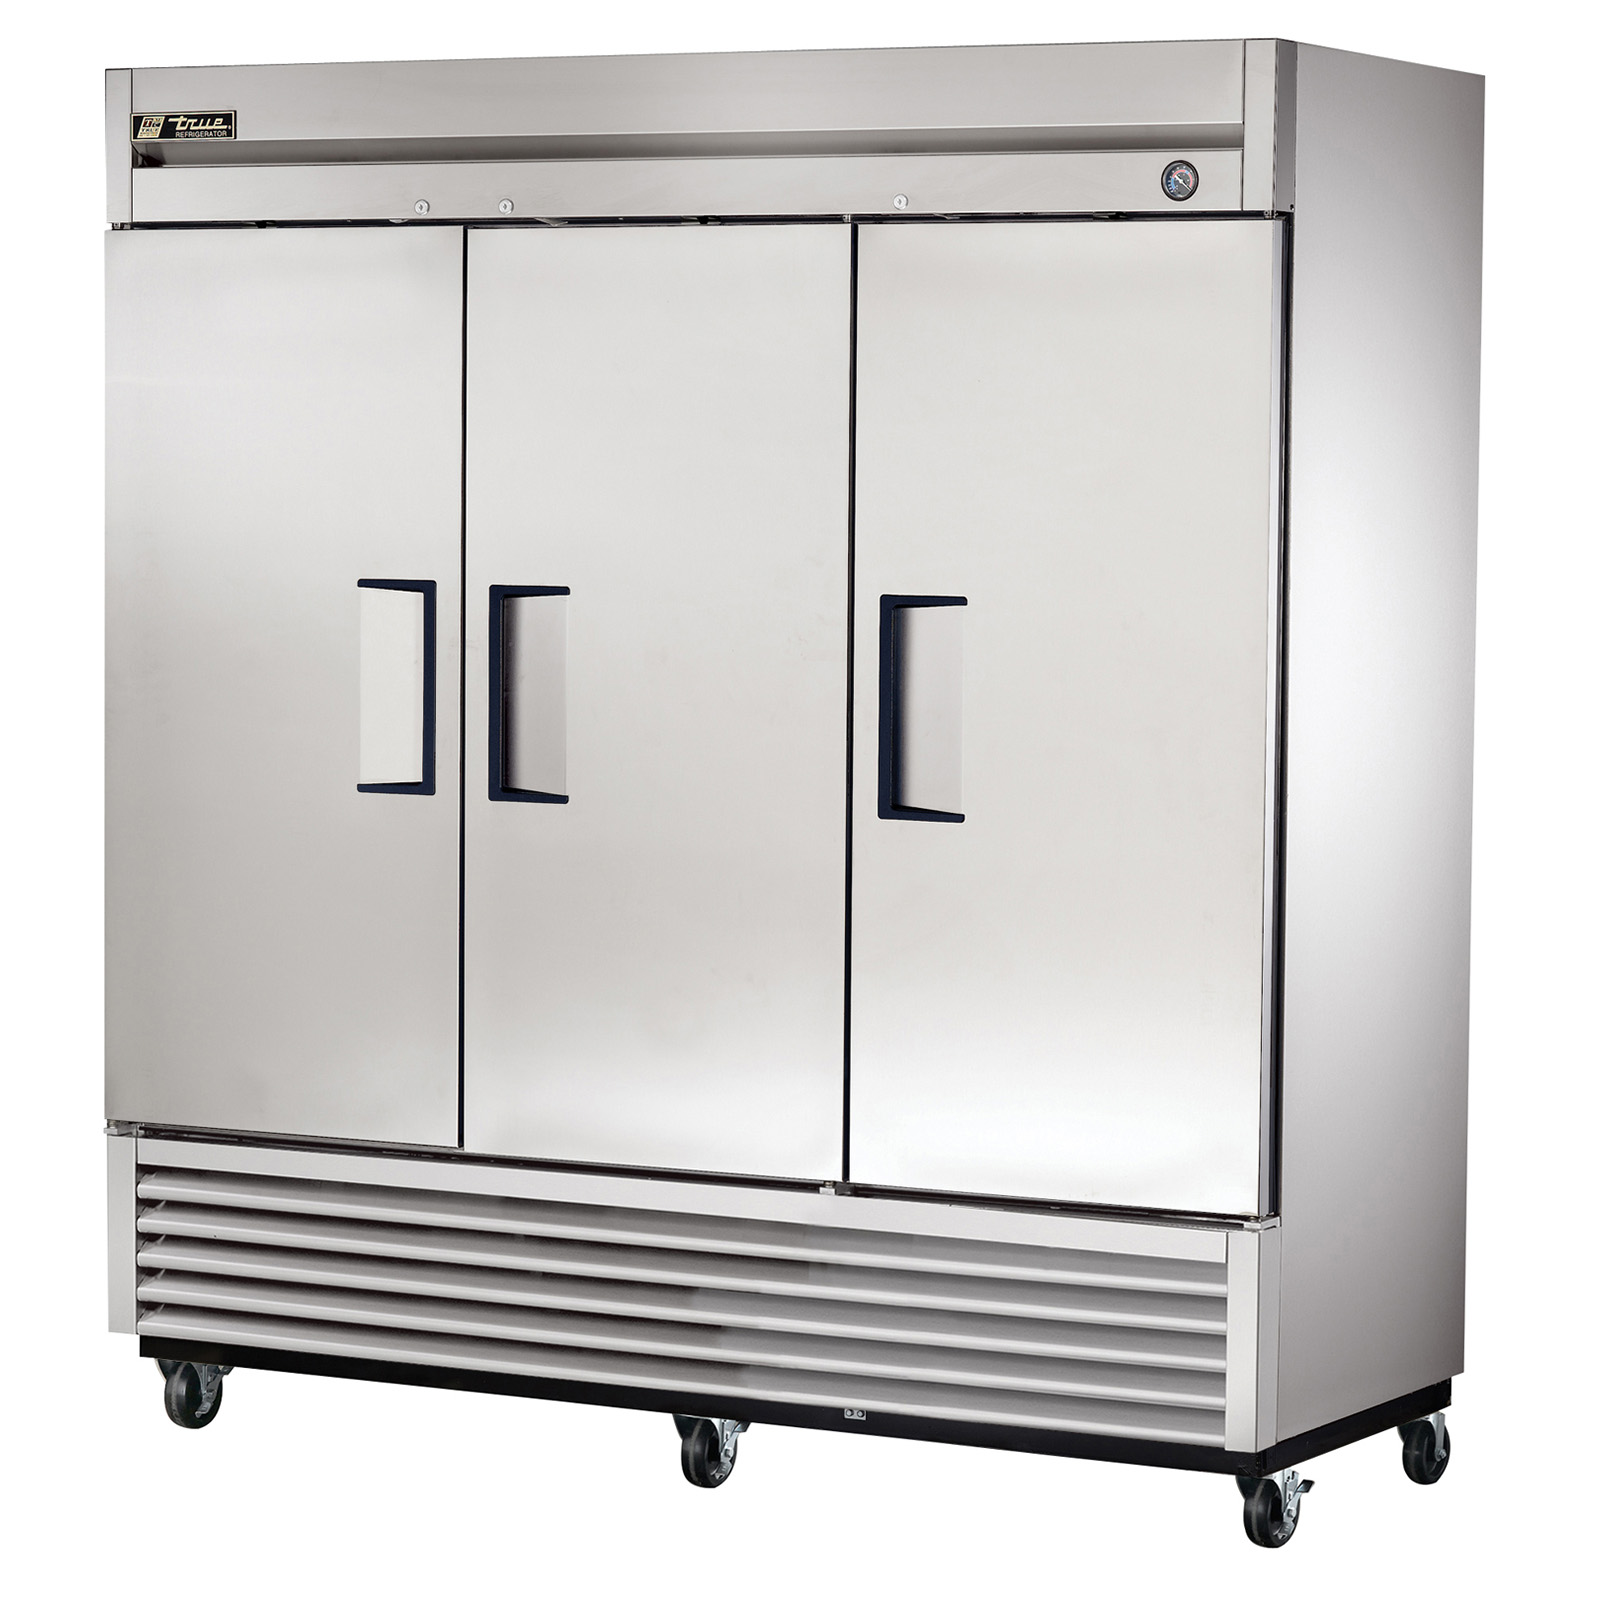 Used Kitchen Equipment Miami: TRUE T-72-HC Commercial Reach-In Refrigerator Cooler